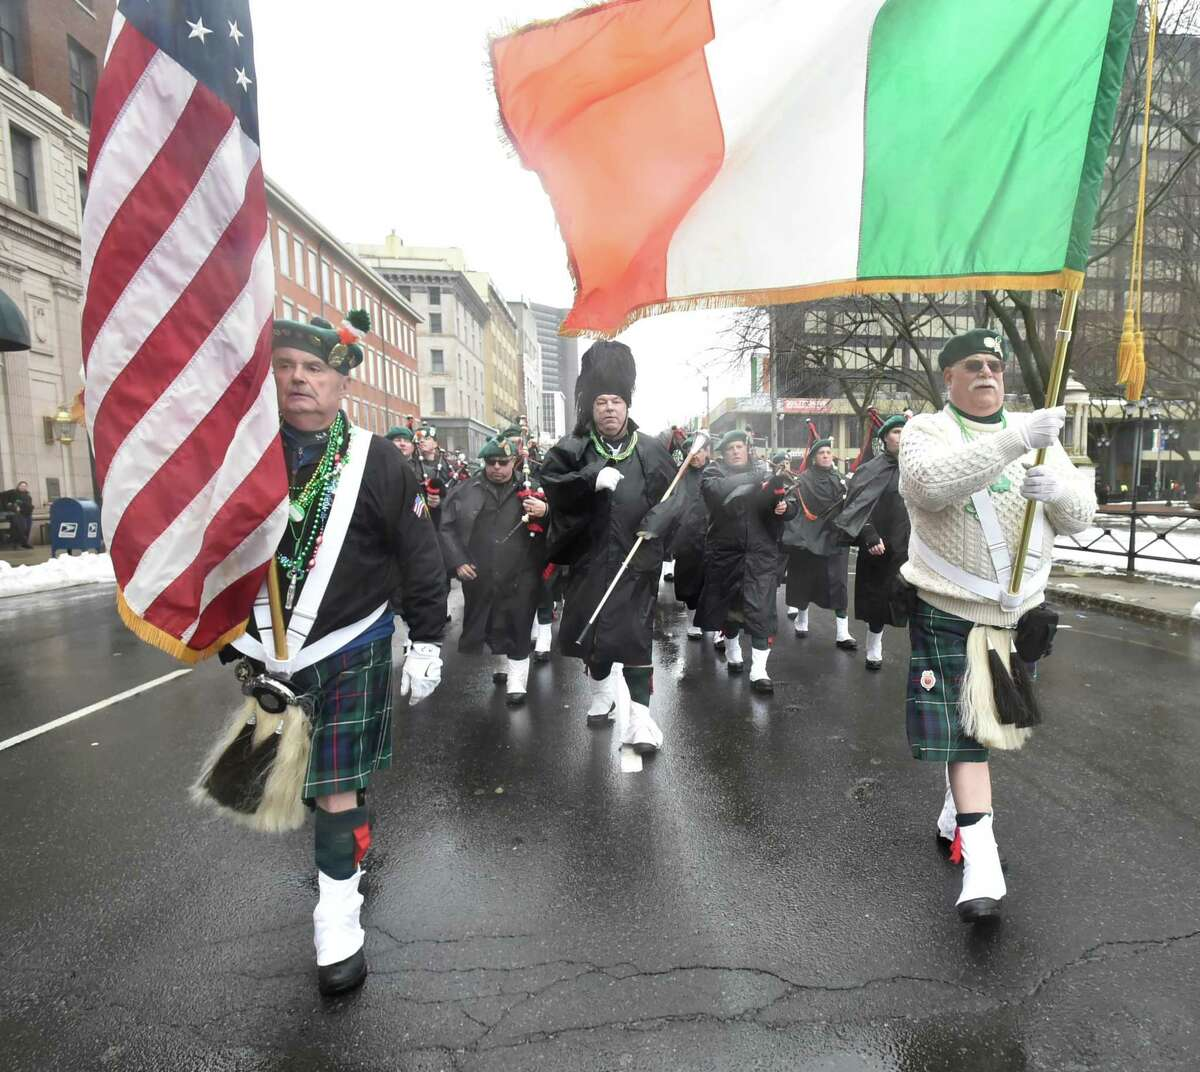 New Haven, Connecticut - Sunday, March 10, 2019: The St. Patrick?•s Day Parade on a rainy and chilly Sunday afternoon in New Haven. According to the St. Patrick's Day Parade of New Haven website, the parade tradition was born in New Haven on March 17, 1842, when about 90 members of the Hibernian Provident Society, a mutual aid organization formed the previous year, marched through the city streets behind a banner made especially for the occasion.